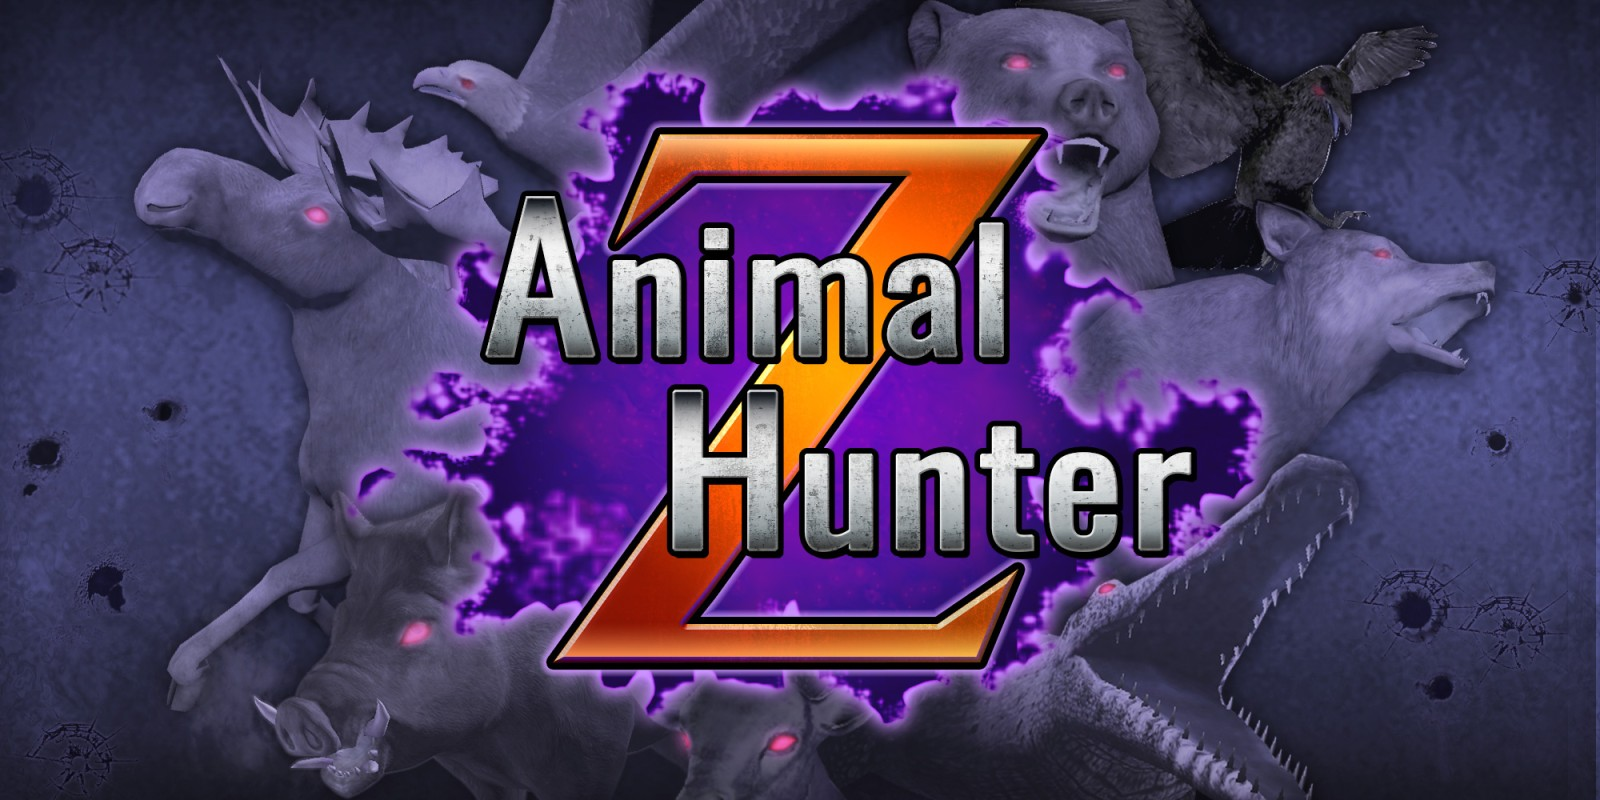 Animal Hunter Z